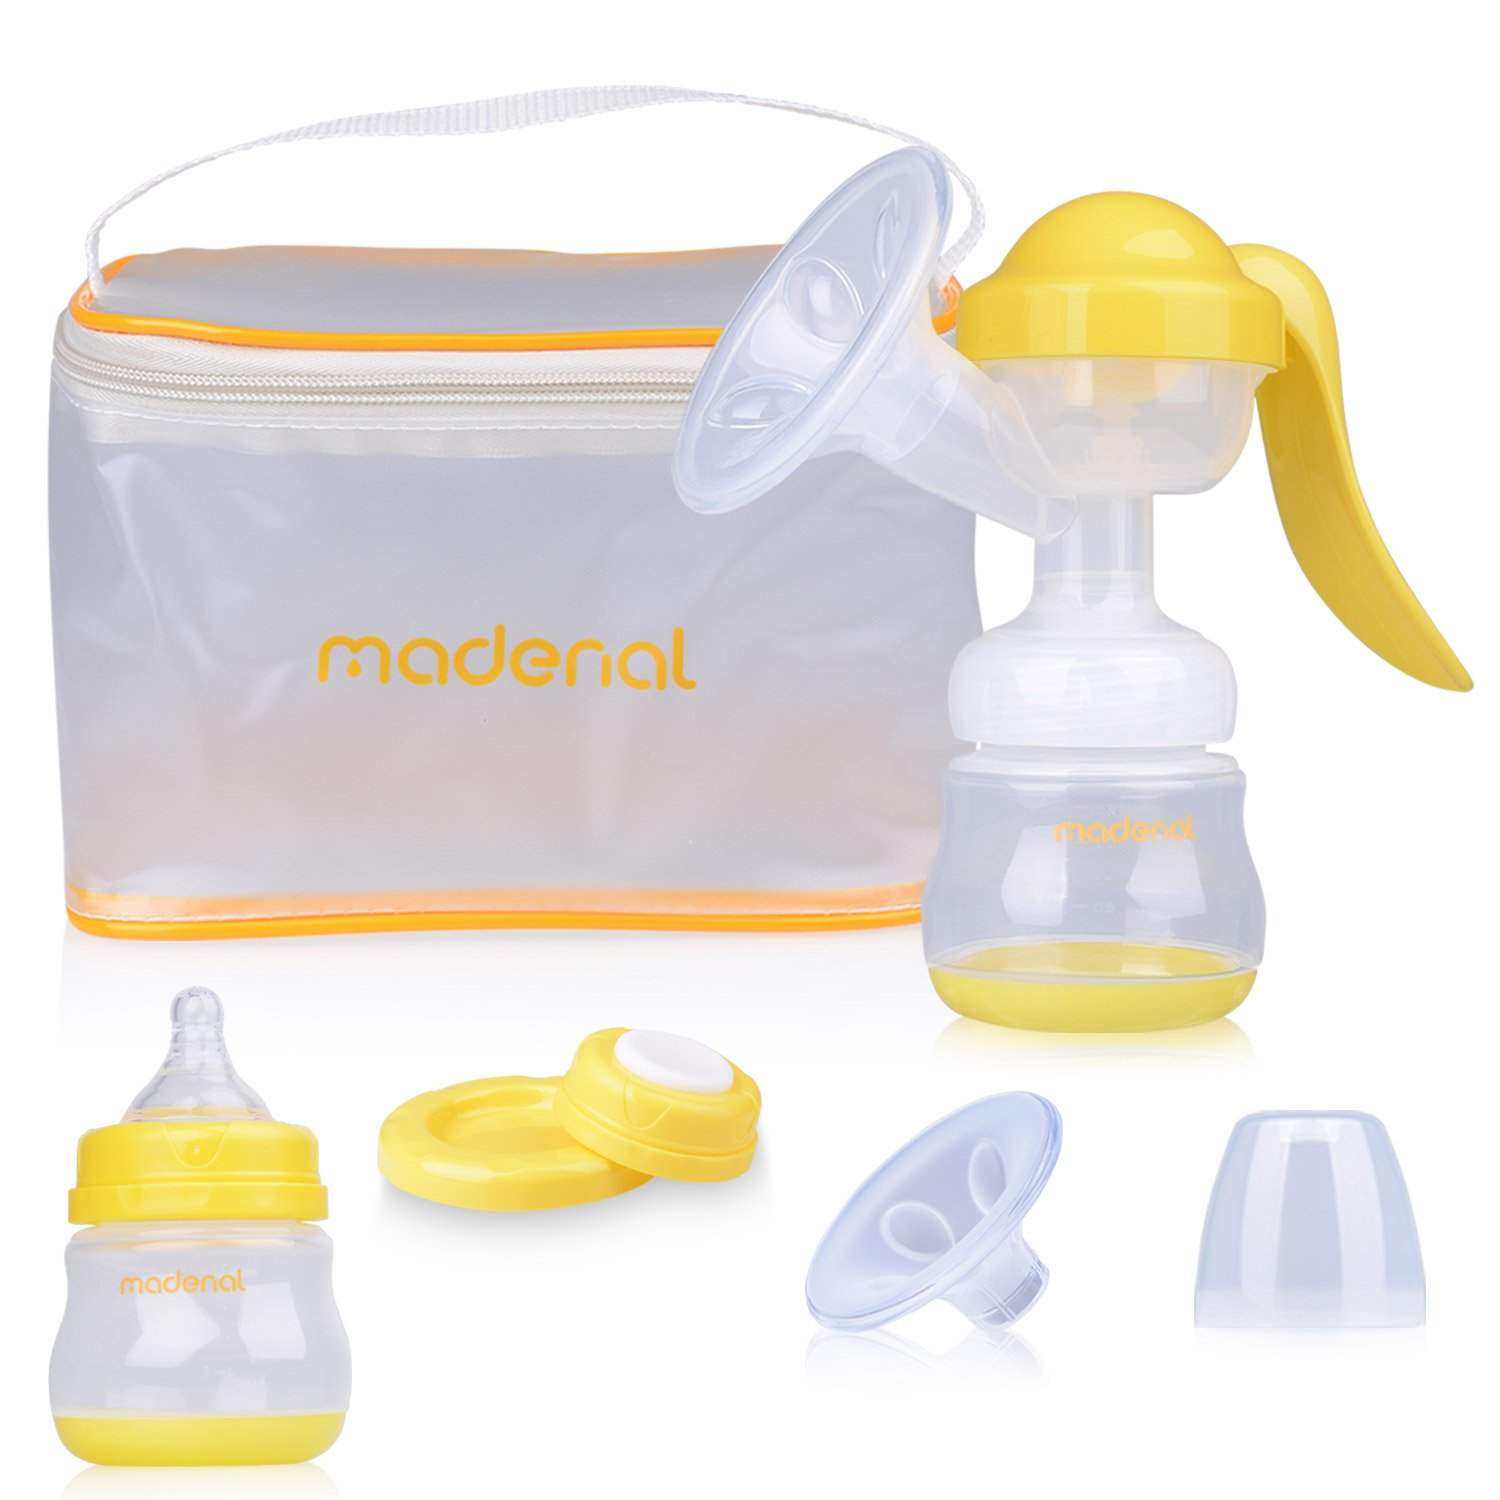 MADENAL Manual Breast Pump Travel Set, Hand Breastfeeding Pump with Bottle and Portable Bag, Effective and Comfortable